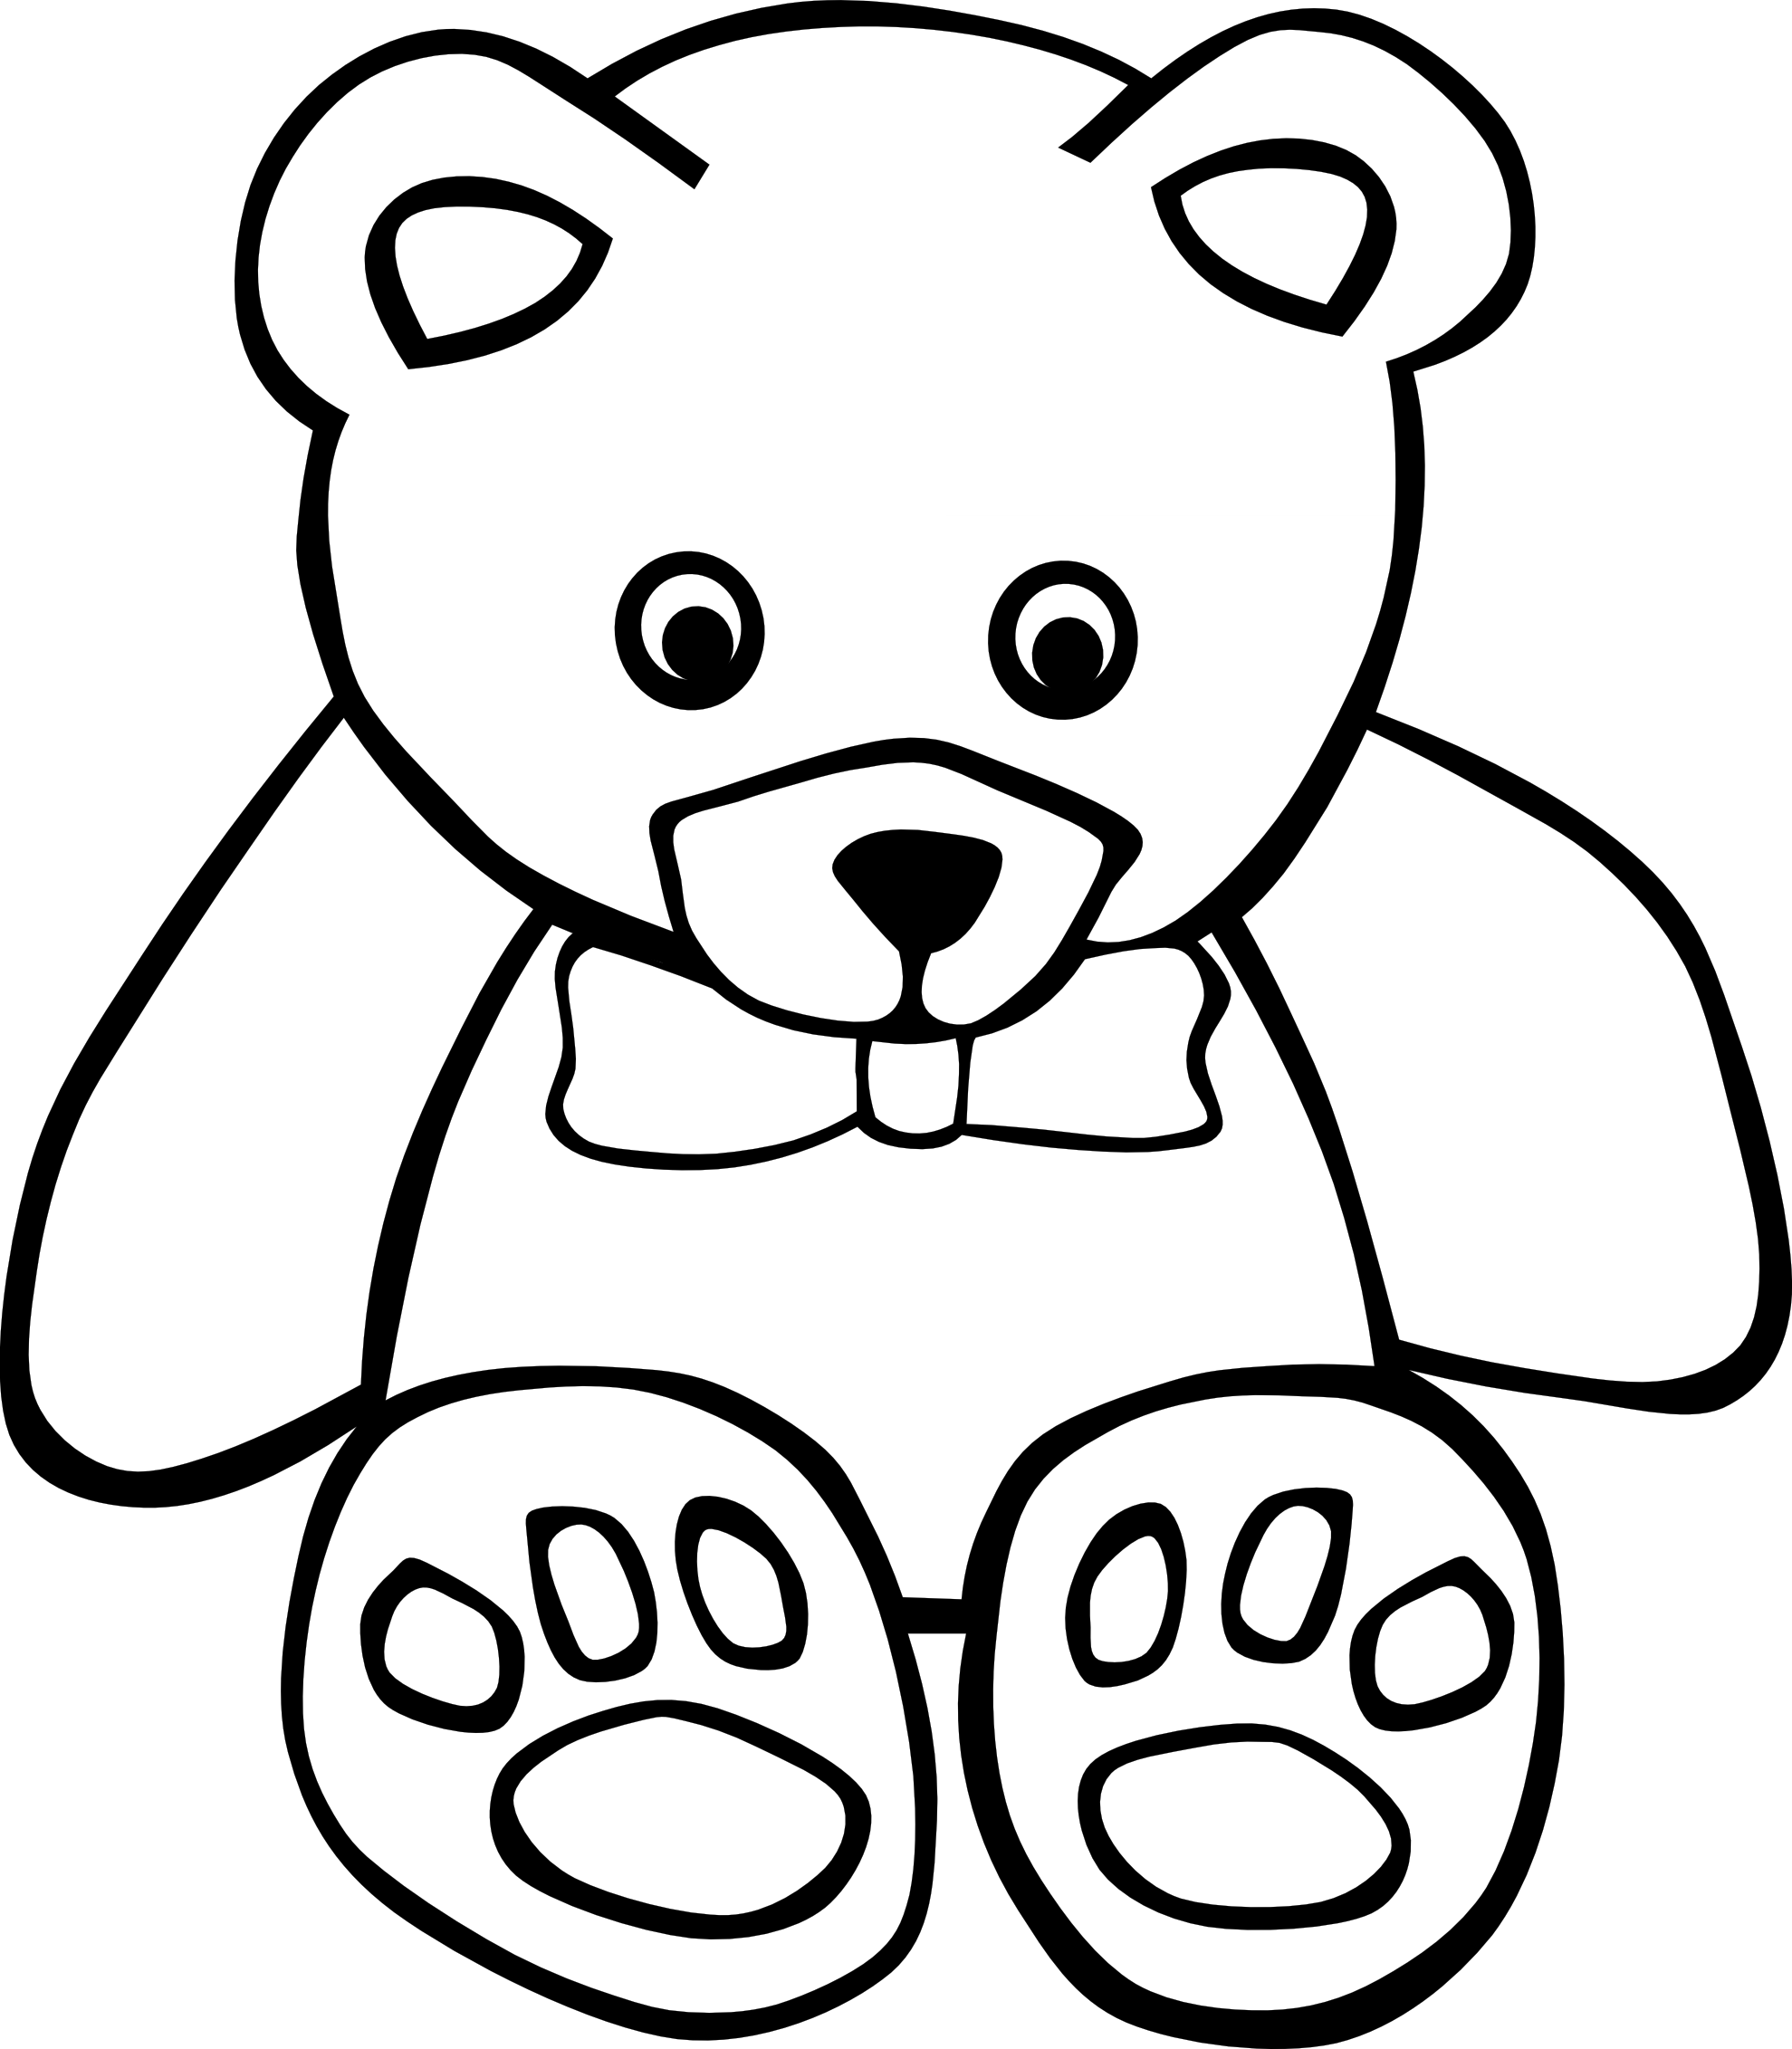 Teddy Bear 1 Black White Line Art Coloring Sheet Colouring Page Scallywag Coloring Book Colouring Teddy Bear Day Teddy Bear Pictures Teddy Bear Coloring Pages